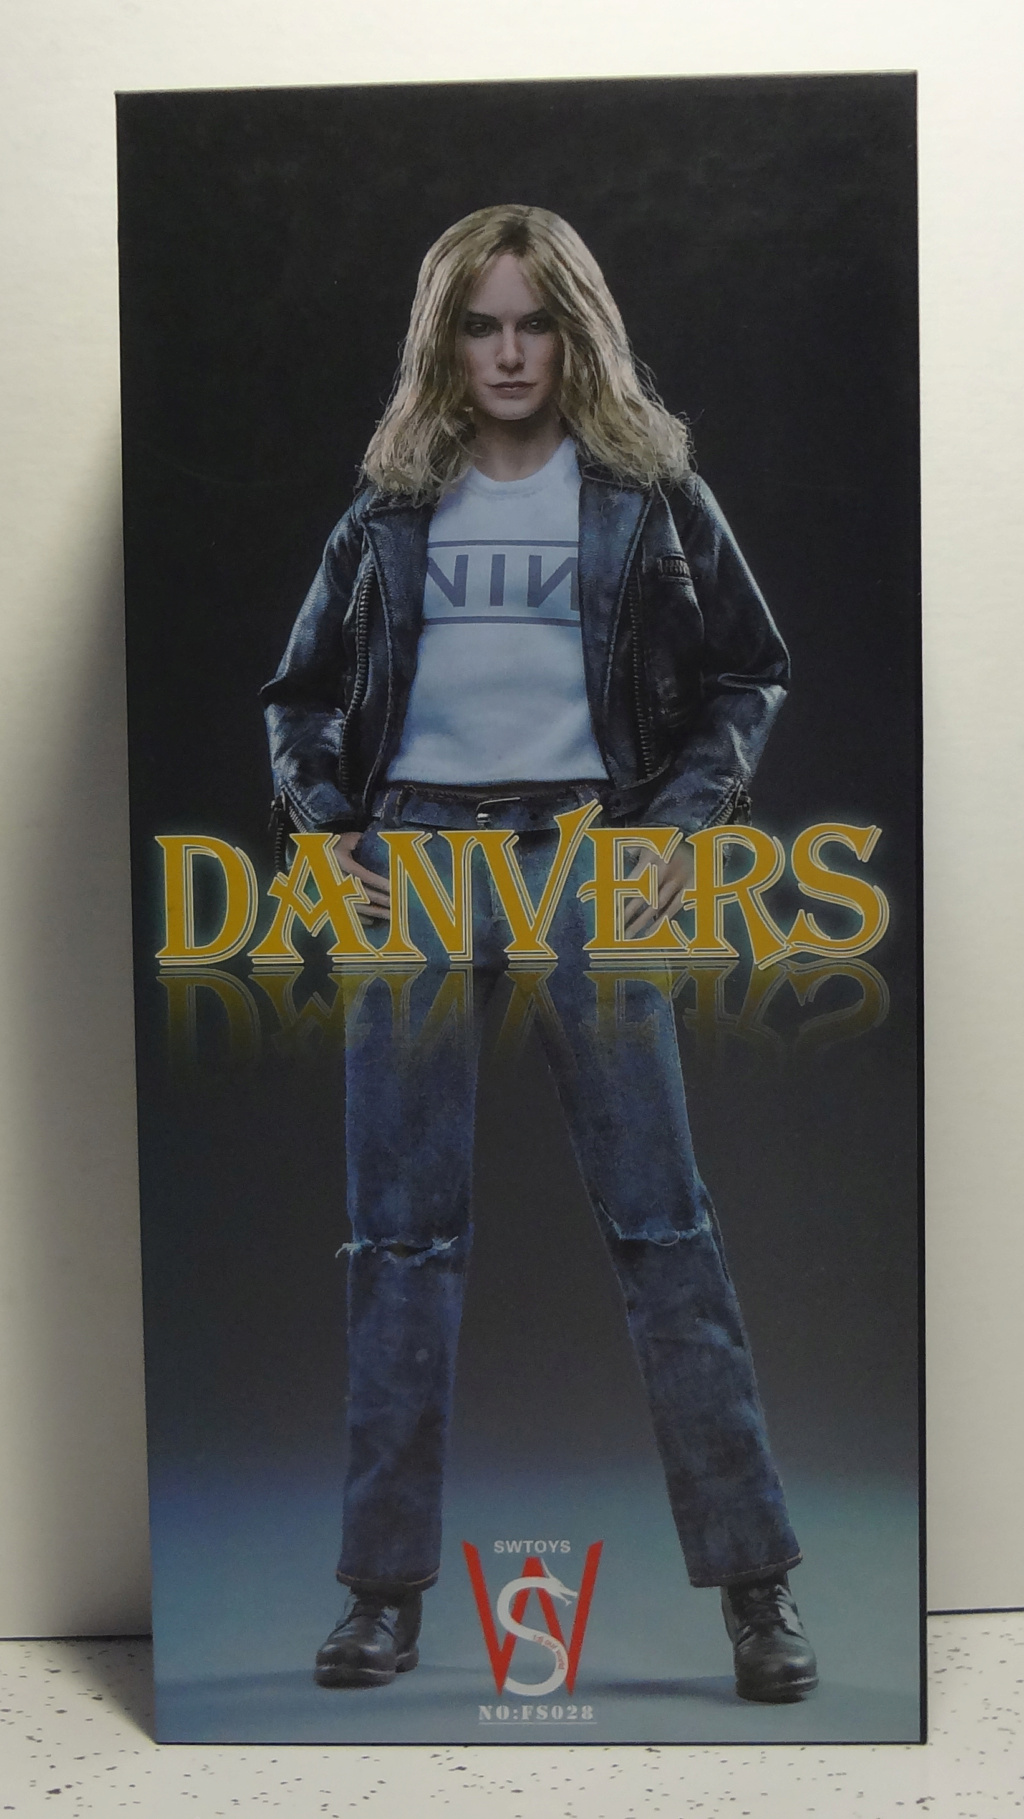 SWToys - NEW PRODUCT: Swtoys FS028 1/6 Scale Danvers figure Dsc00912